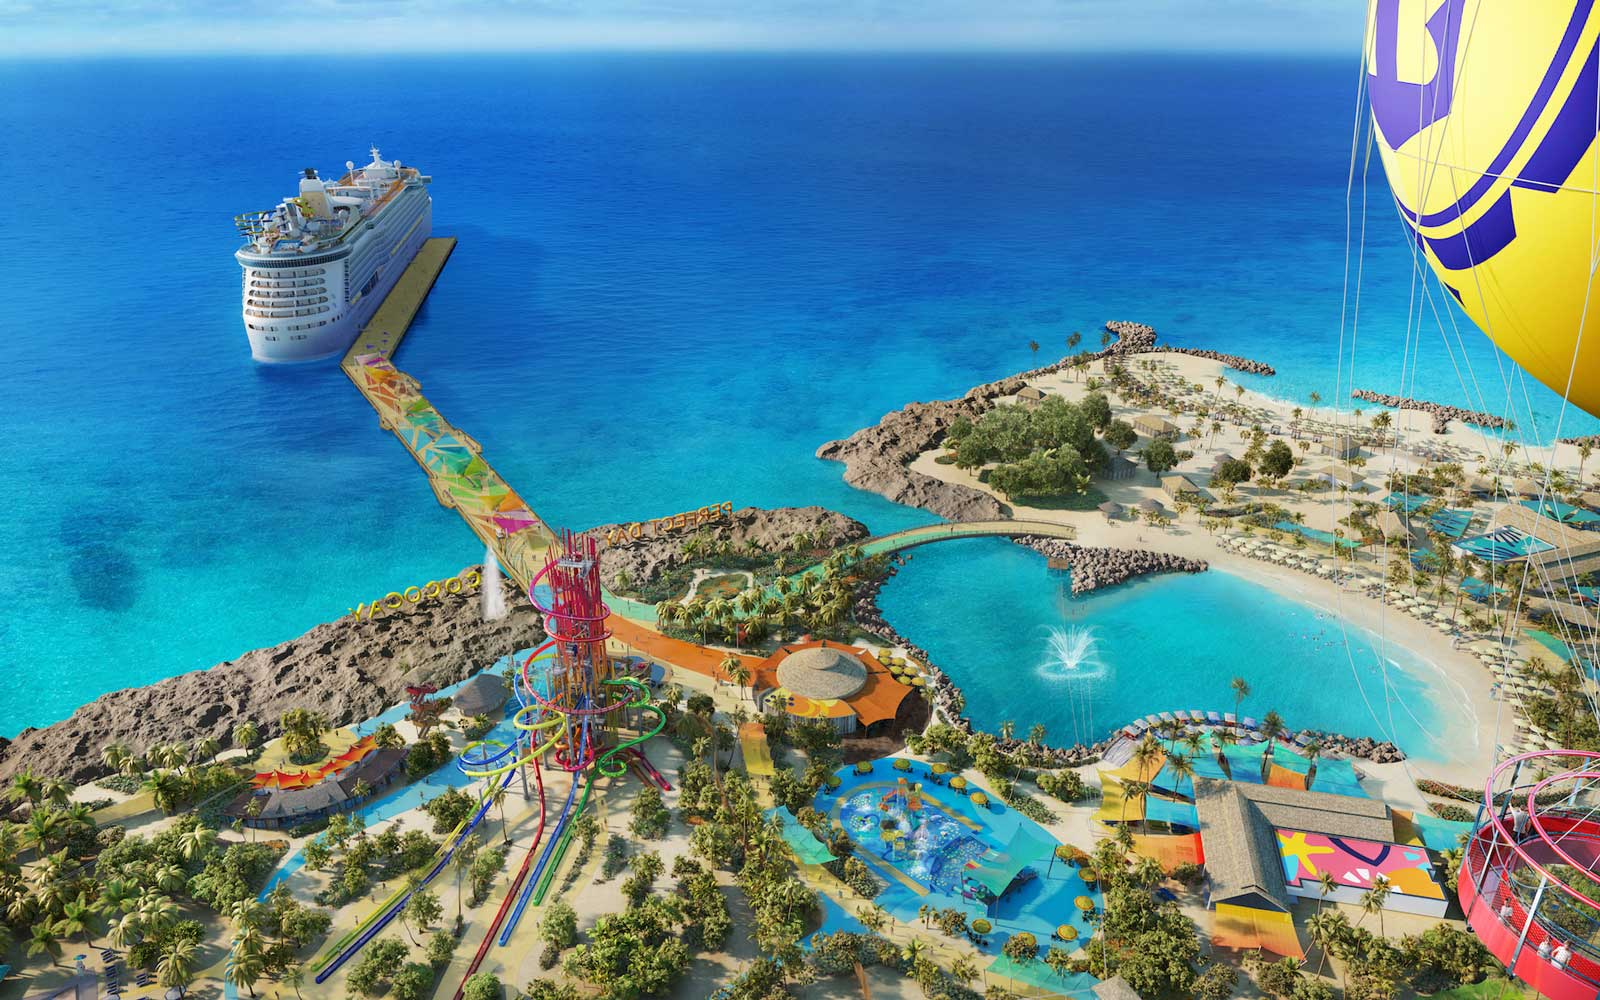 Here's What to Expect on a Royal Caribbean Cruise to Private Island CocoCay